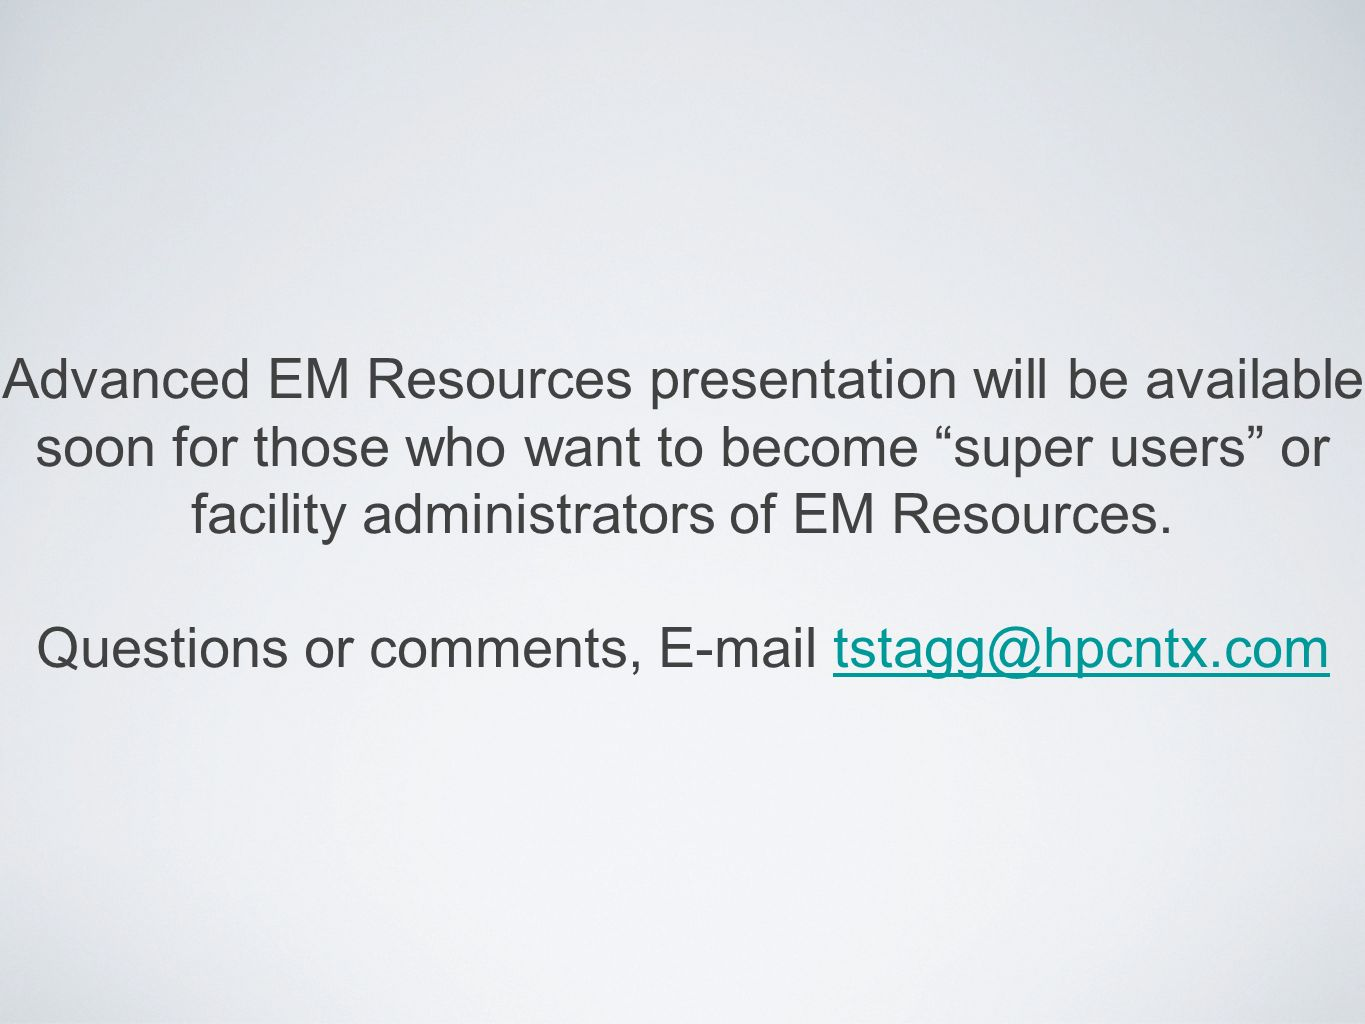 Advanced EM Resources presentation will be available soon for those who want to become super users or facility administrators of EM Resources.